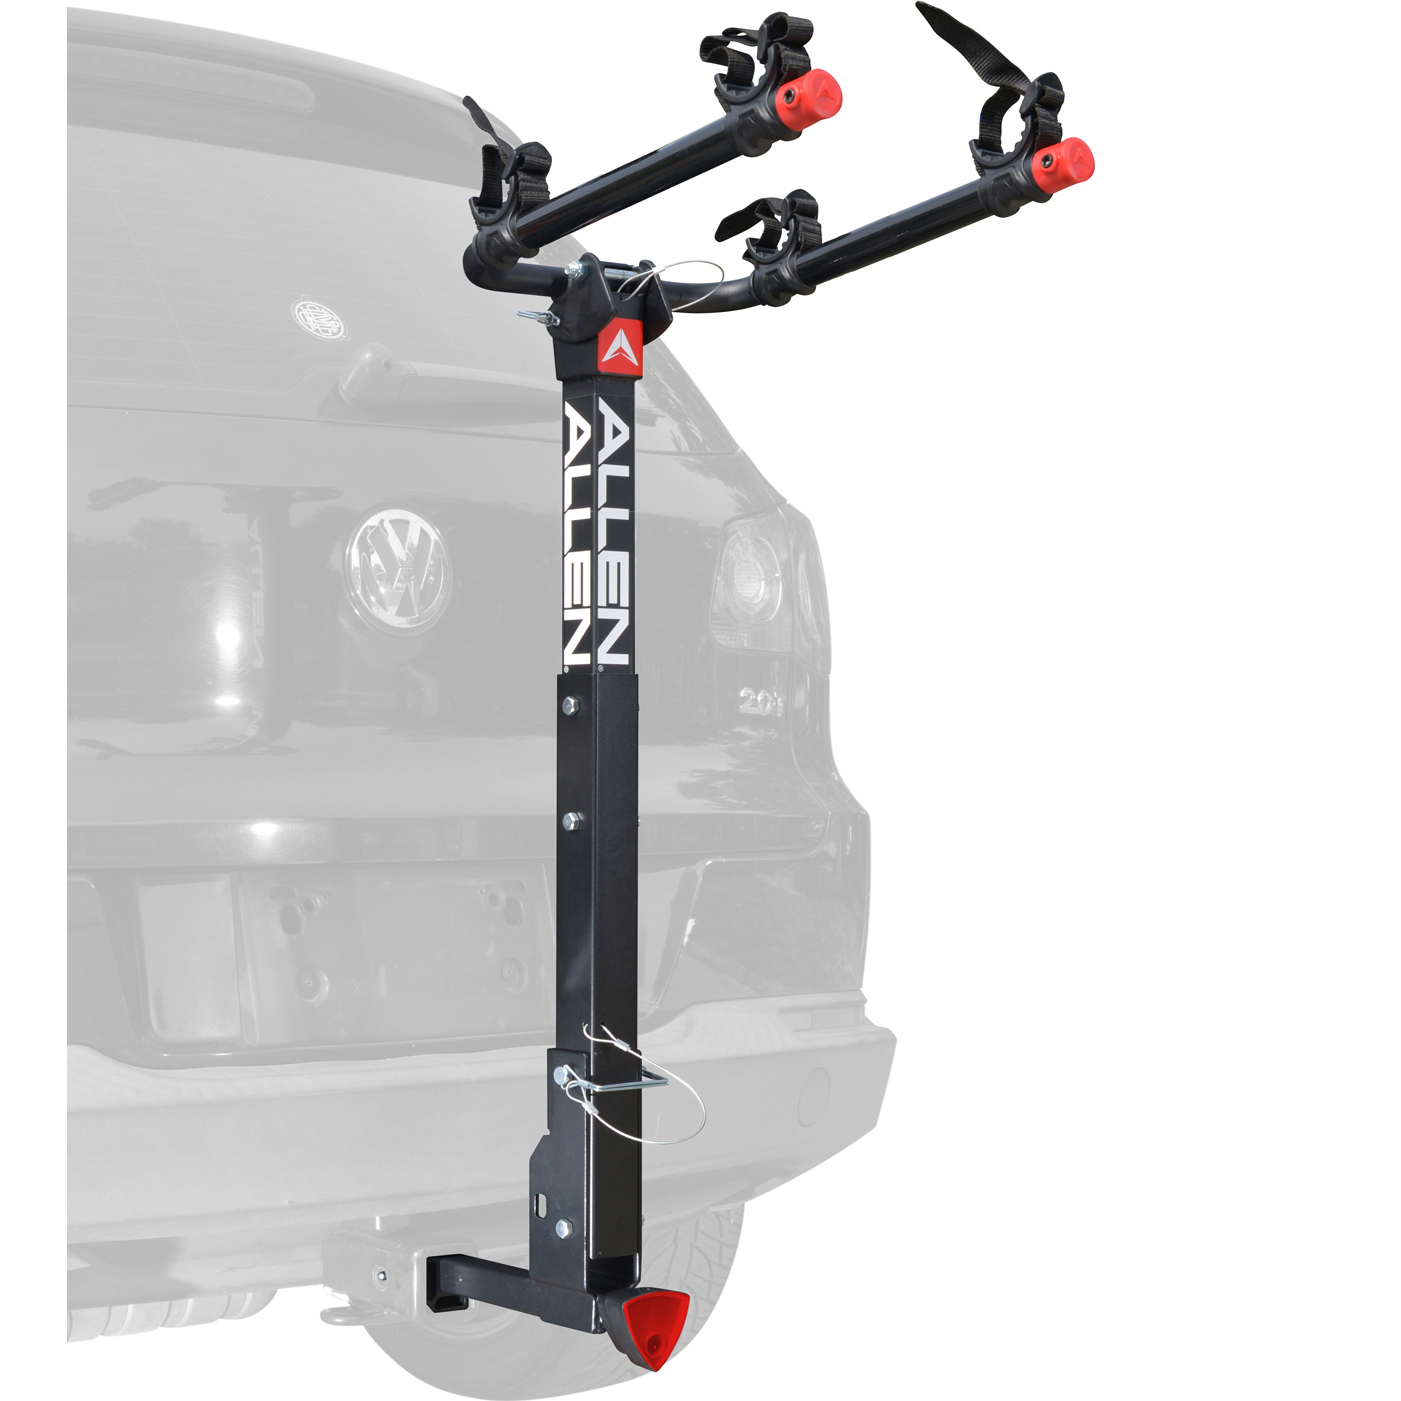 Allen Sports Deluxe Quick Install Locking 2-Bicycle Hitch Mounted Bike Rack Carrier, 522QR